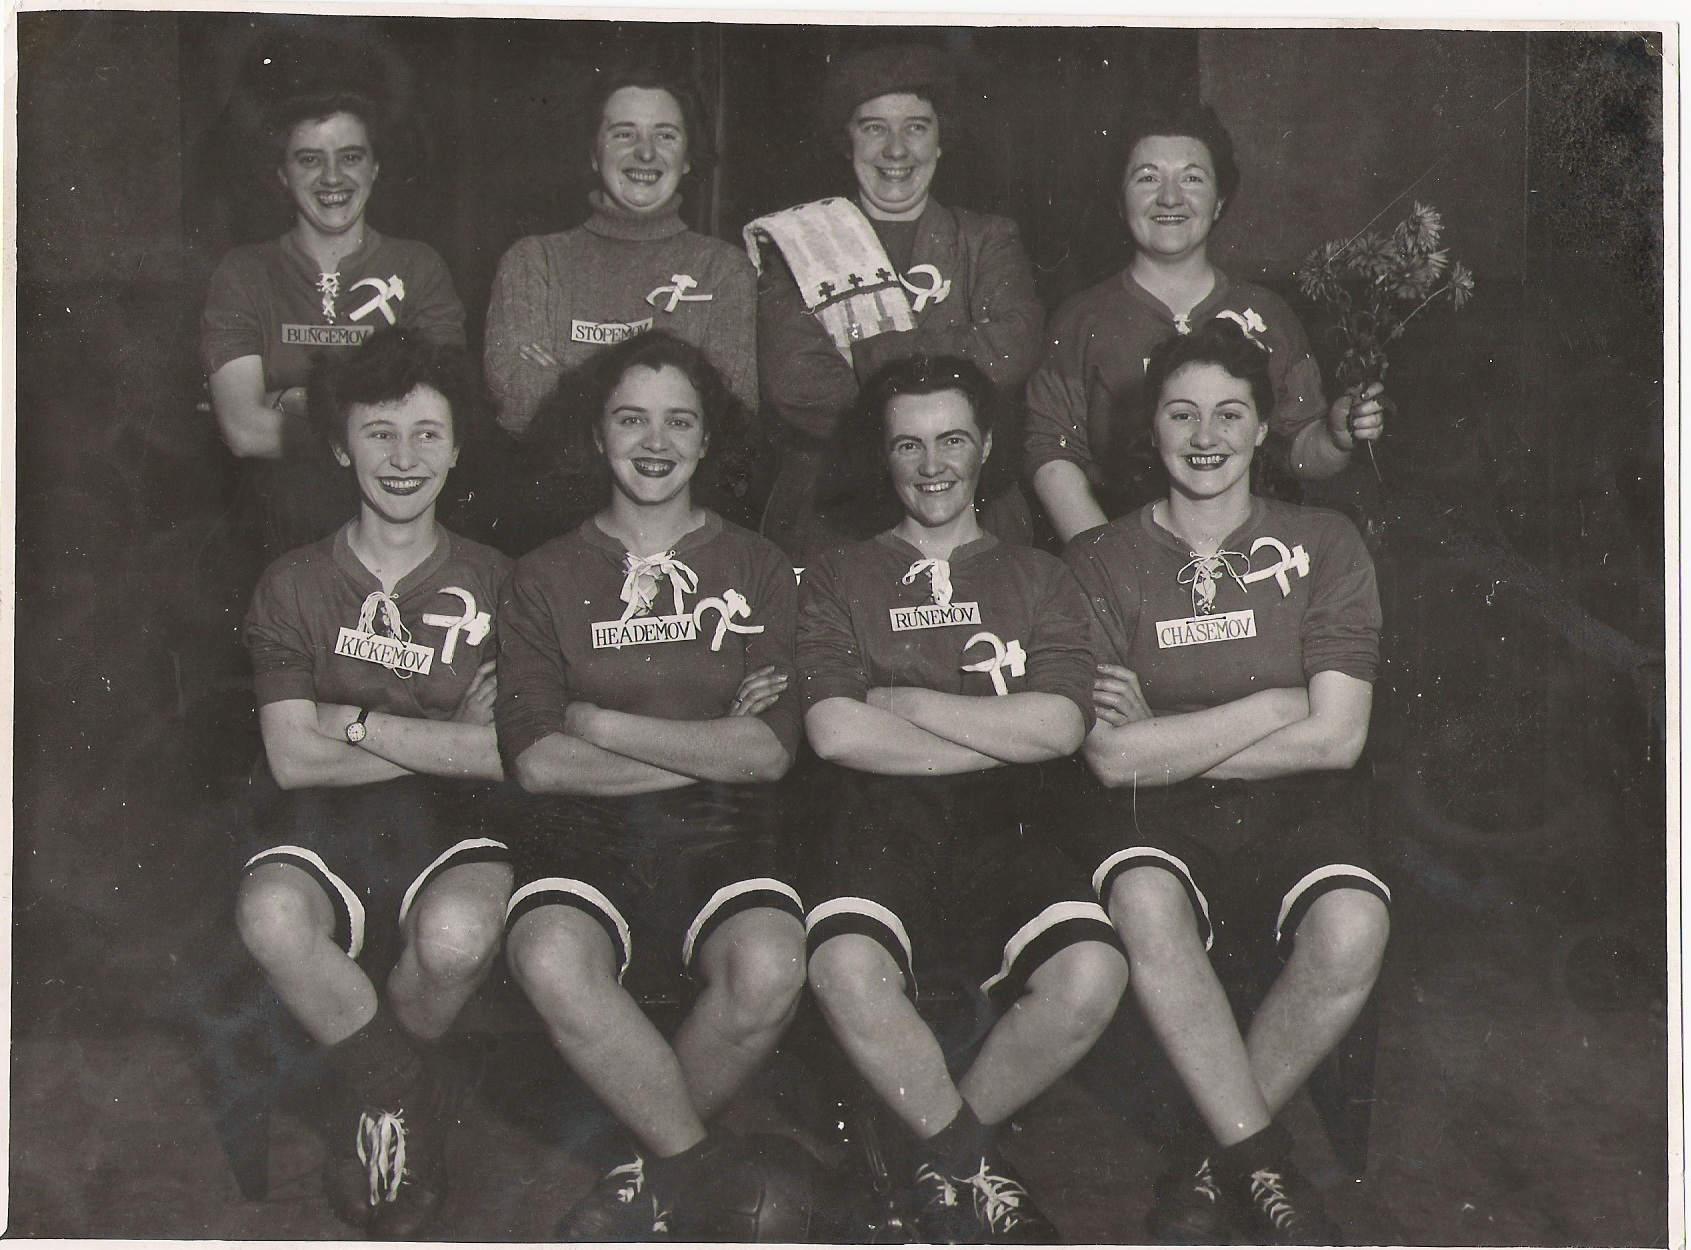 Margaret Taylor, nee Ritchie, front row second from left